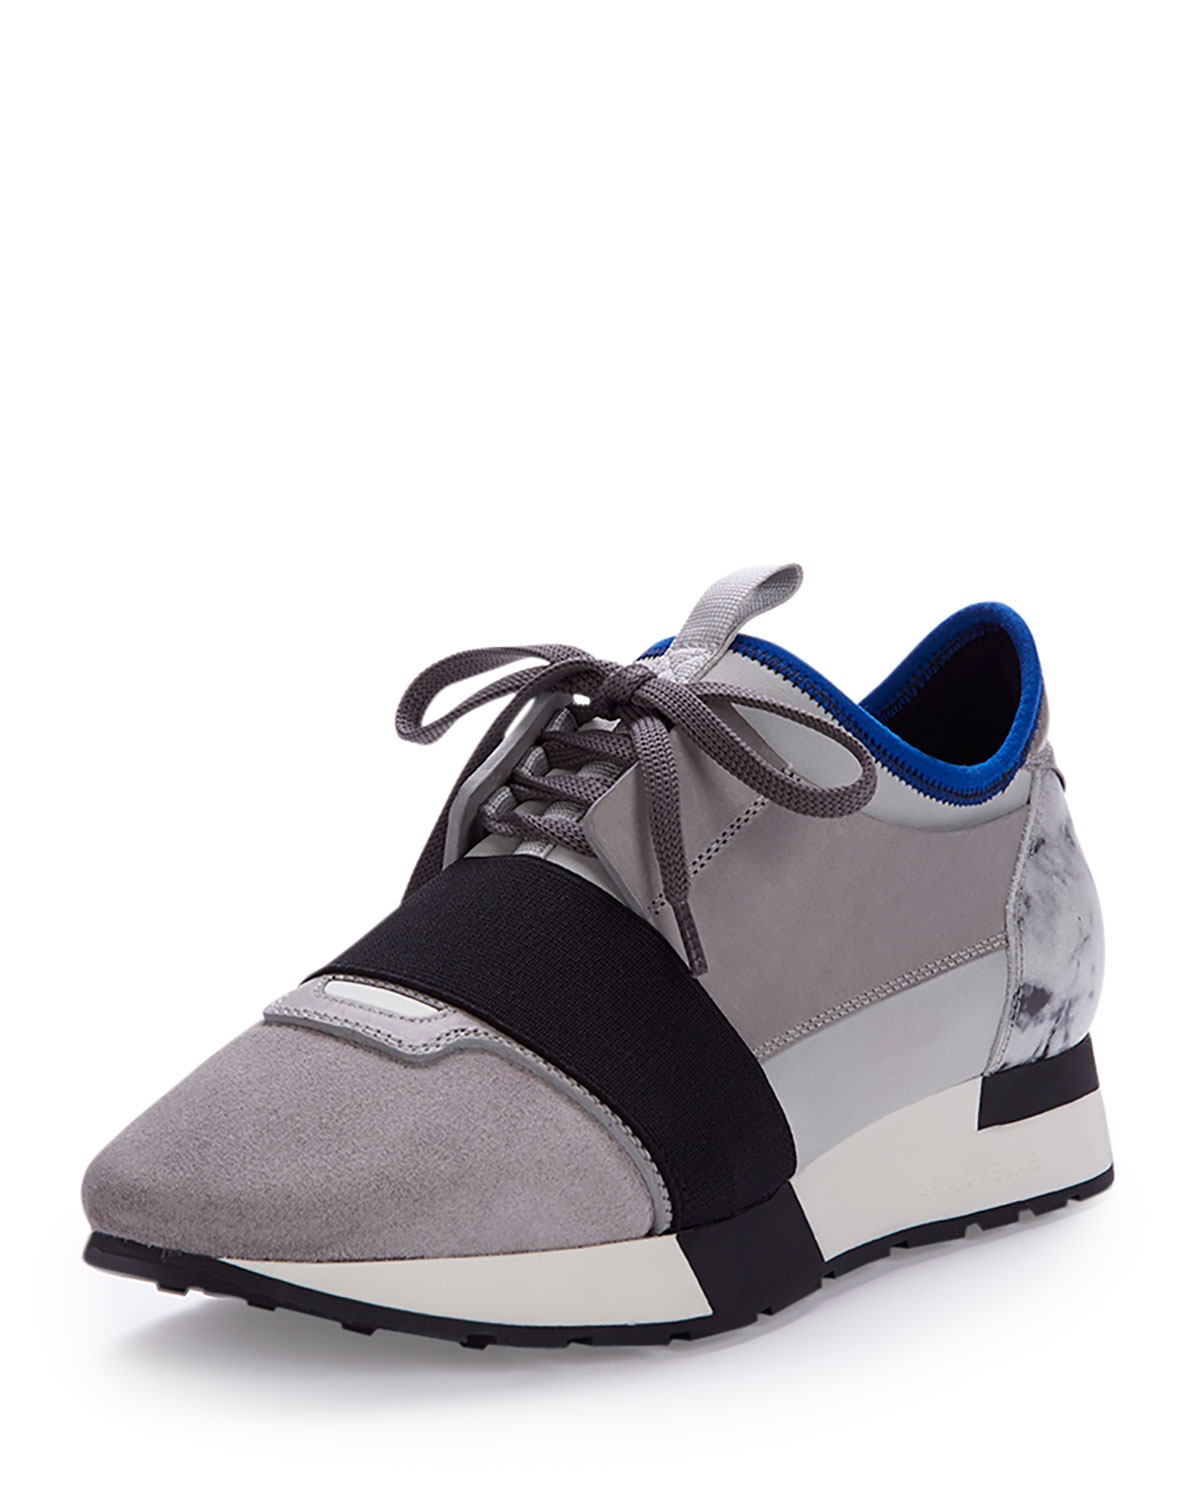 27ed05721b03 Lyst - Balenciaga Mixed-media Leather Sneaker in Gray